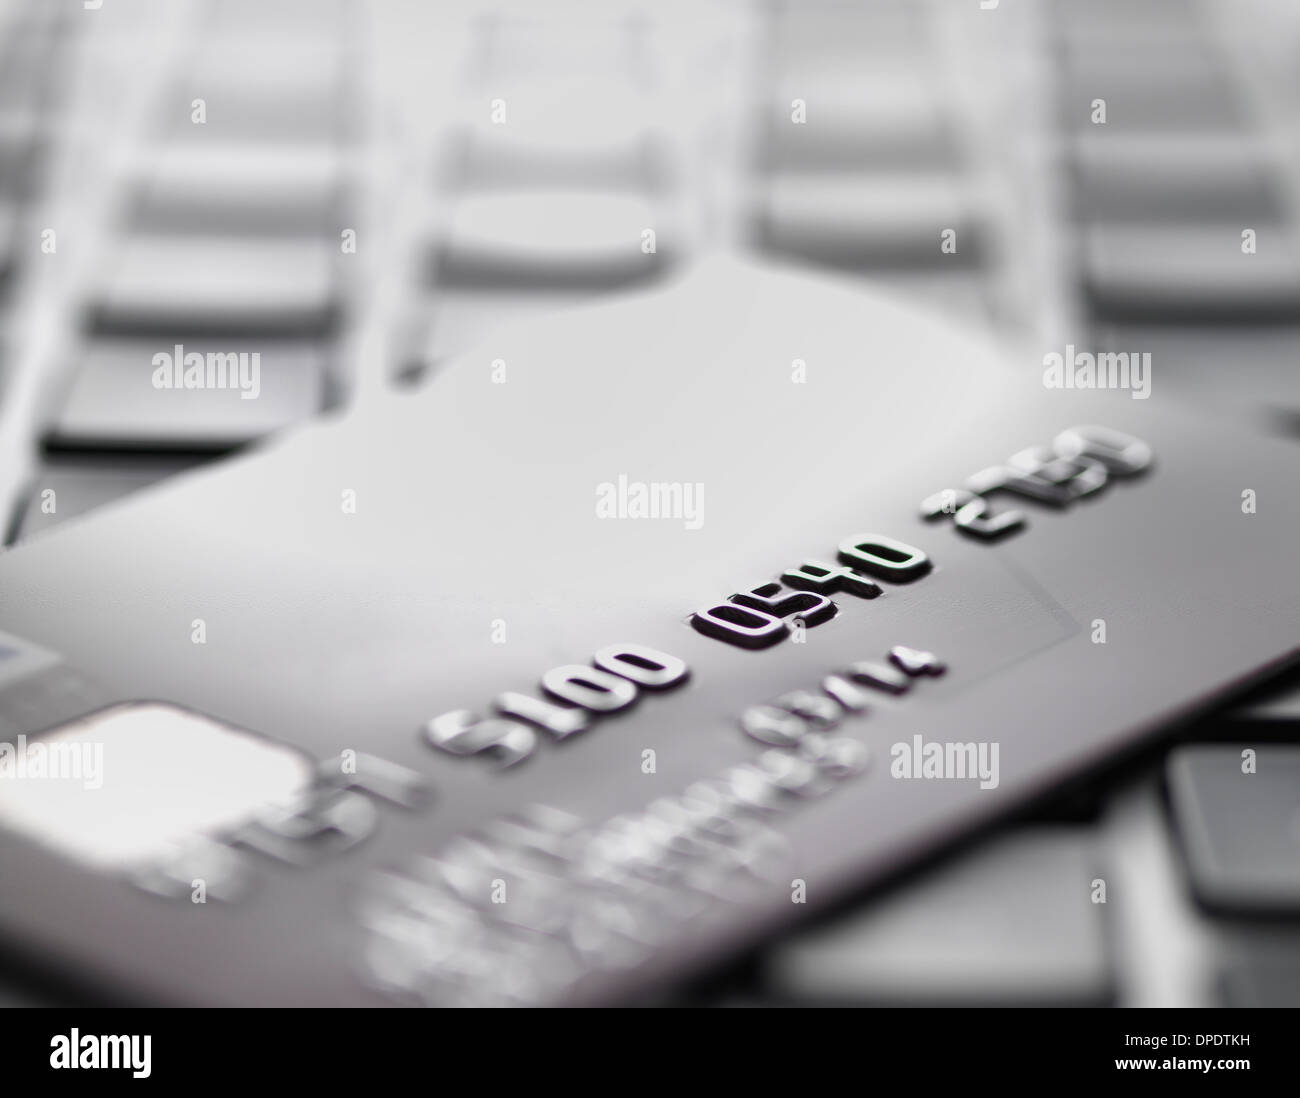 Credit card on laptop to illustrate internet shopping and internet fraud - Stock Image